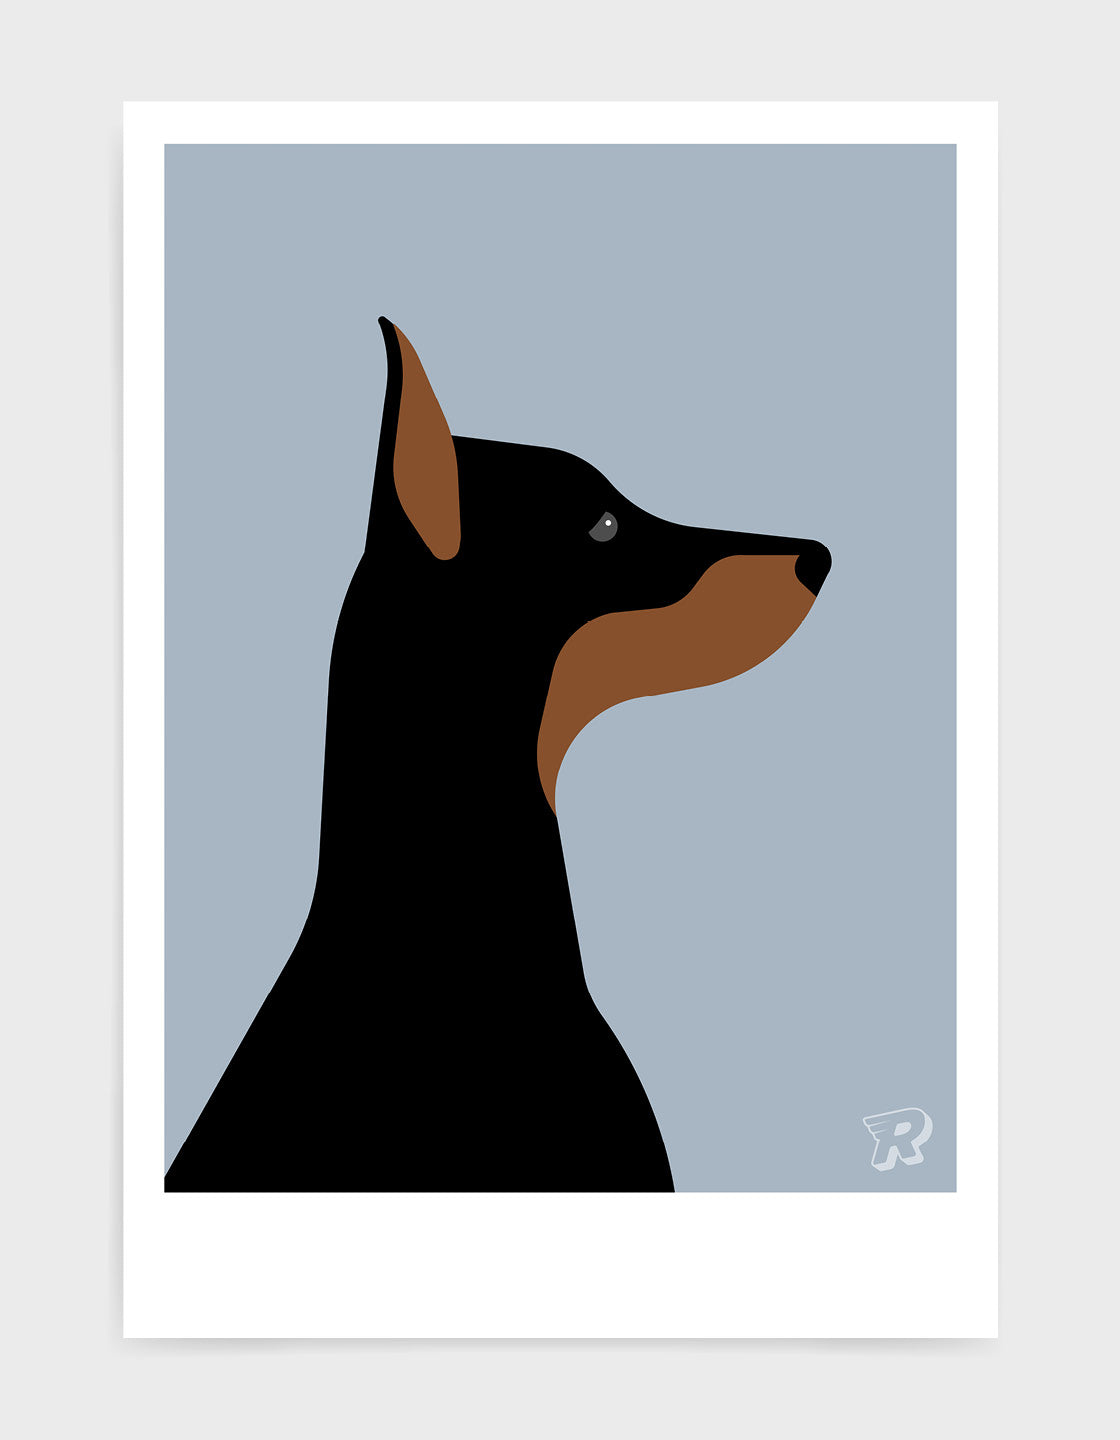 art print of a doberman dog in profile against a light grey background